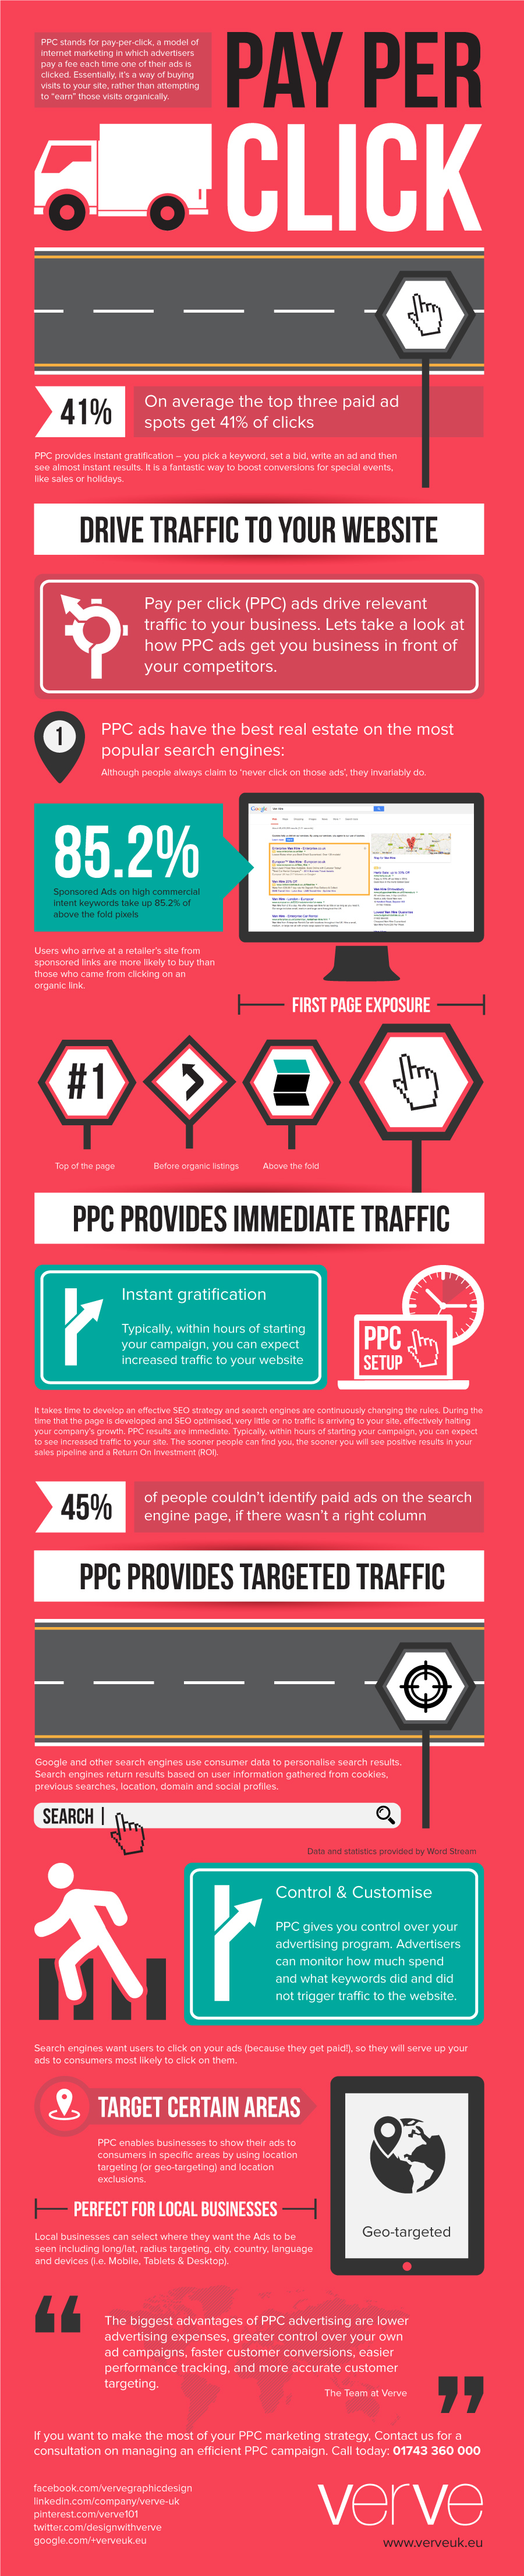 What Is Pay Per Click (PPC)?